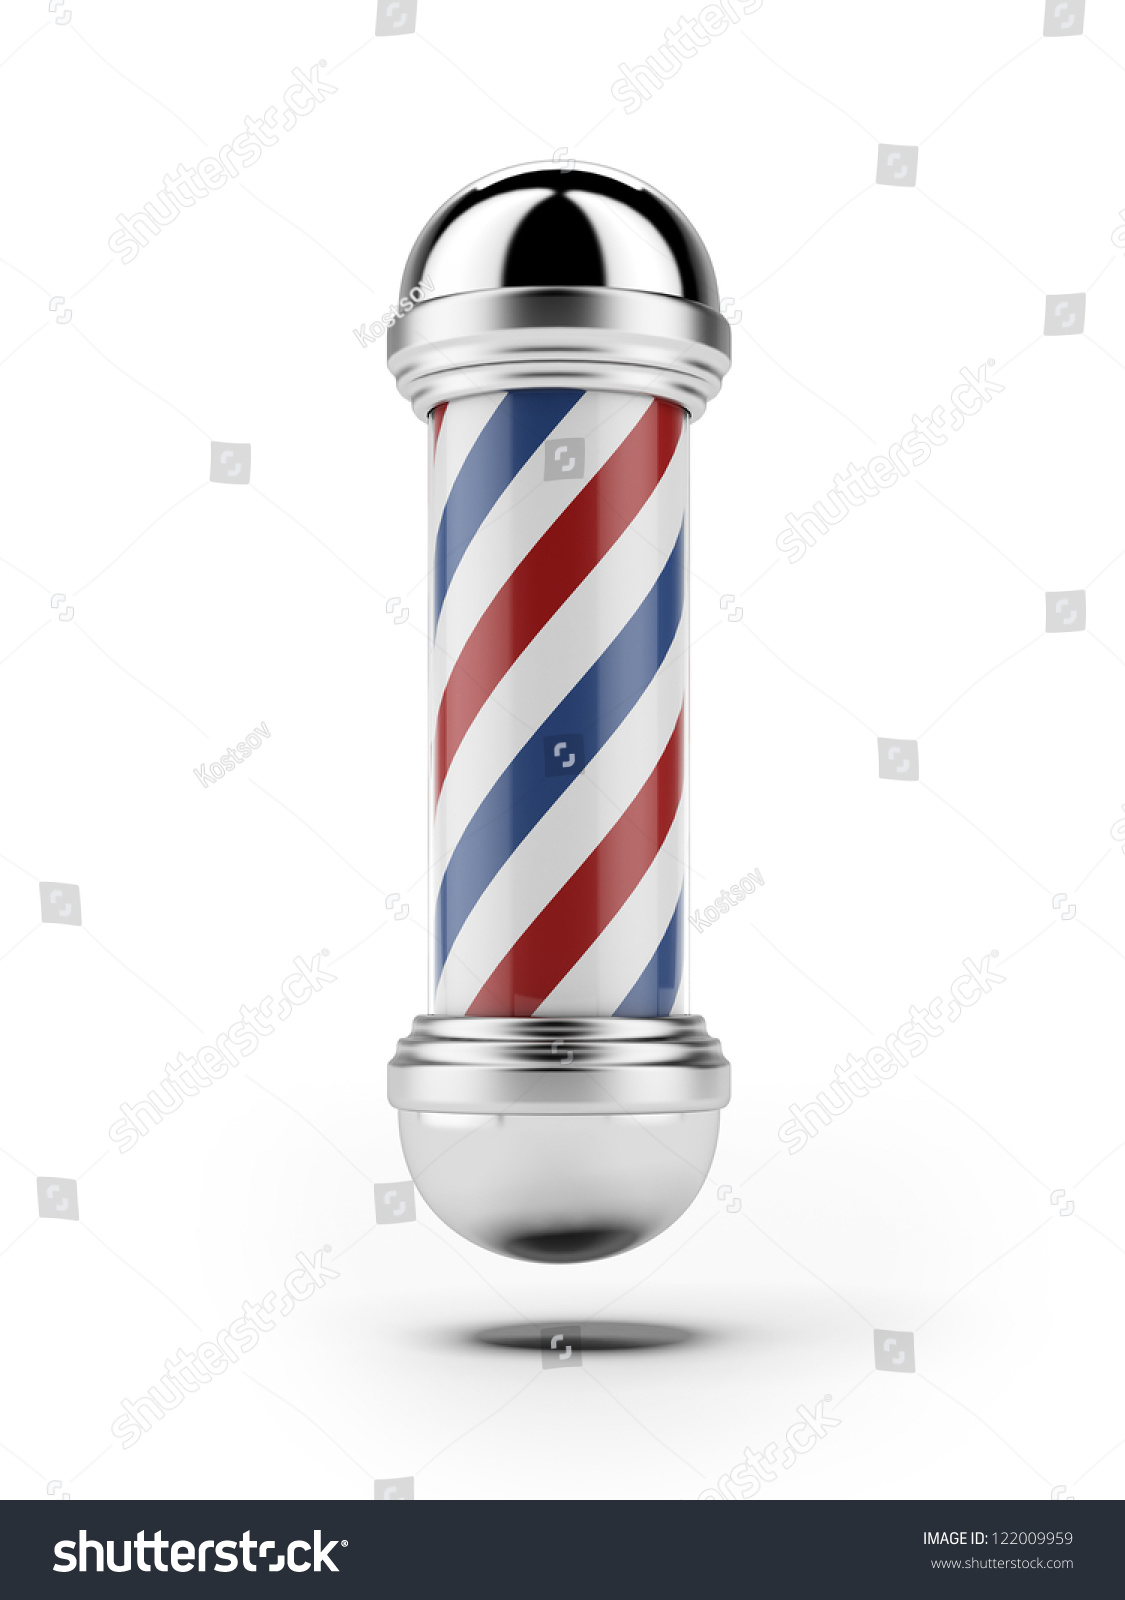 Barber Background : Classic Barber Shop Pole Isolated On A White Background Stock Photo ...